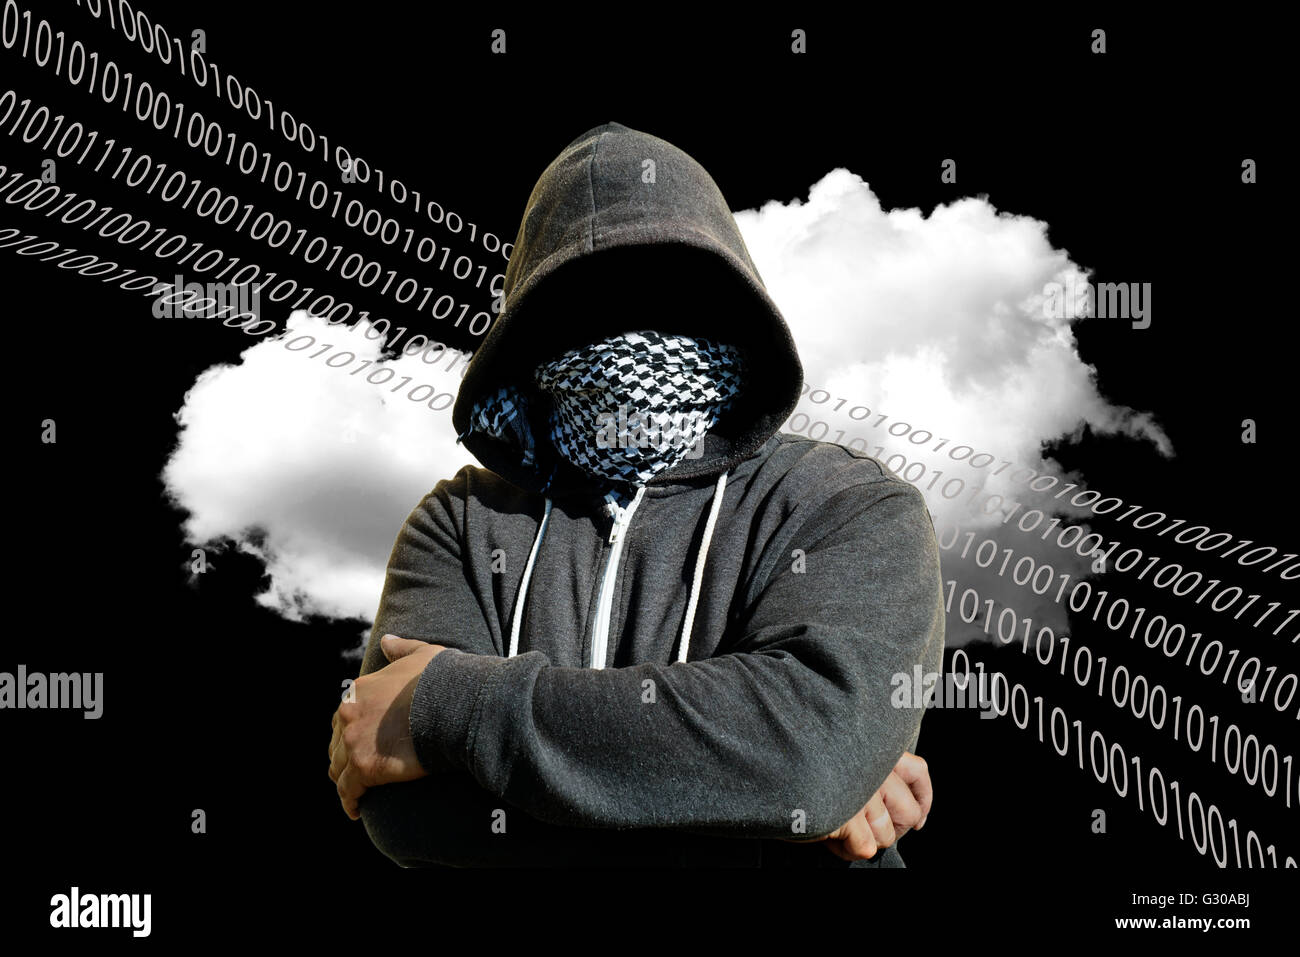 Hooded and masked computer hacker thief with a cloud computer based background. Unknown technology threat to the - Stock Image